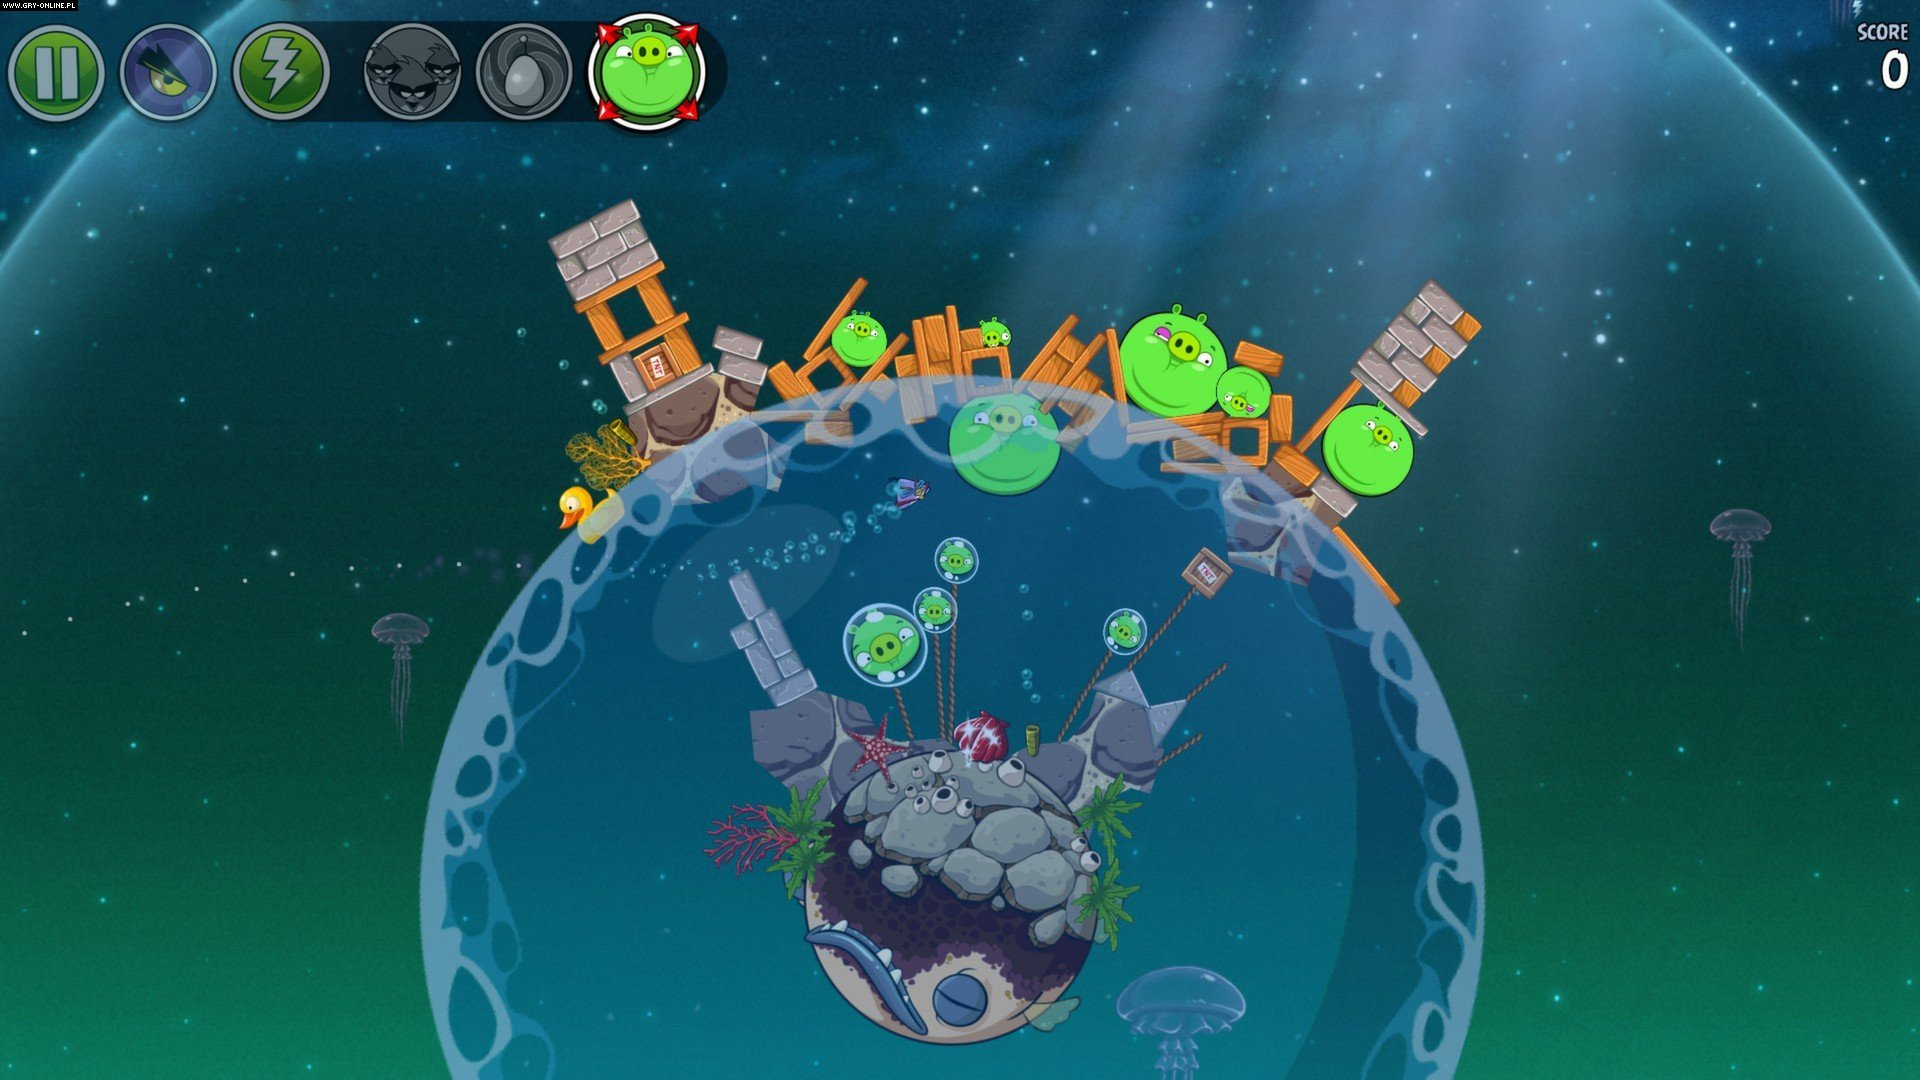 Angry Birds Space PC, AND, iOS, WP Gry Screen 4/10, Rovio Entertainment